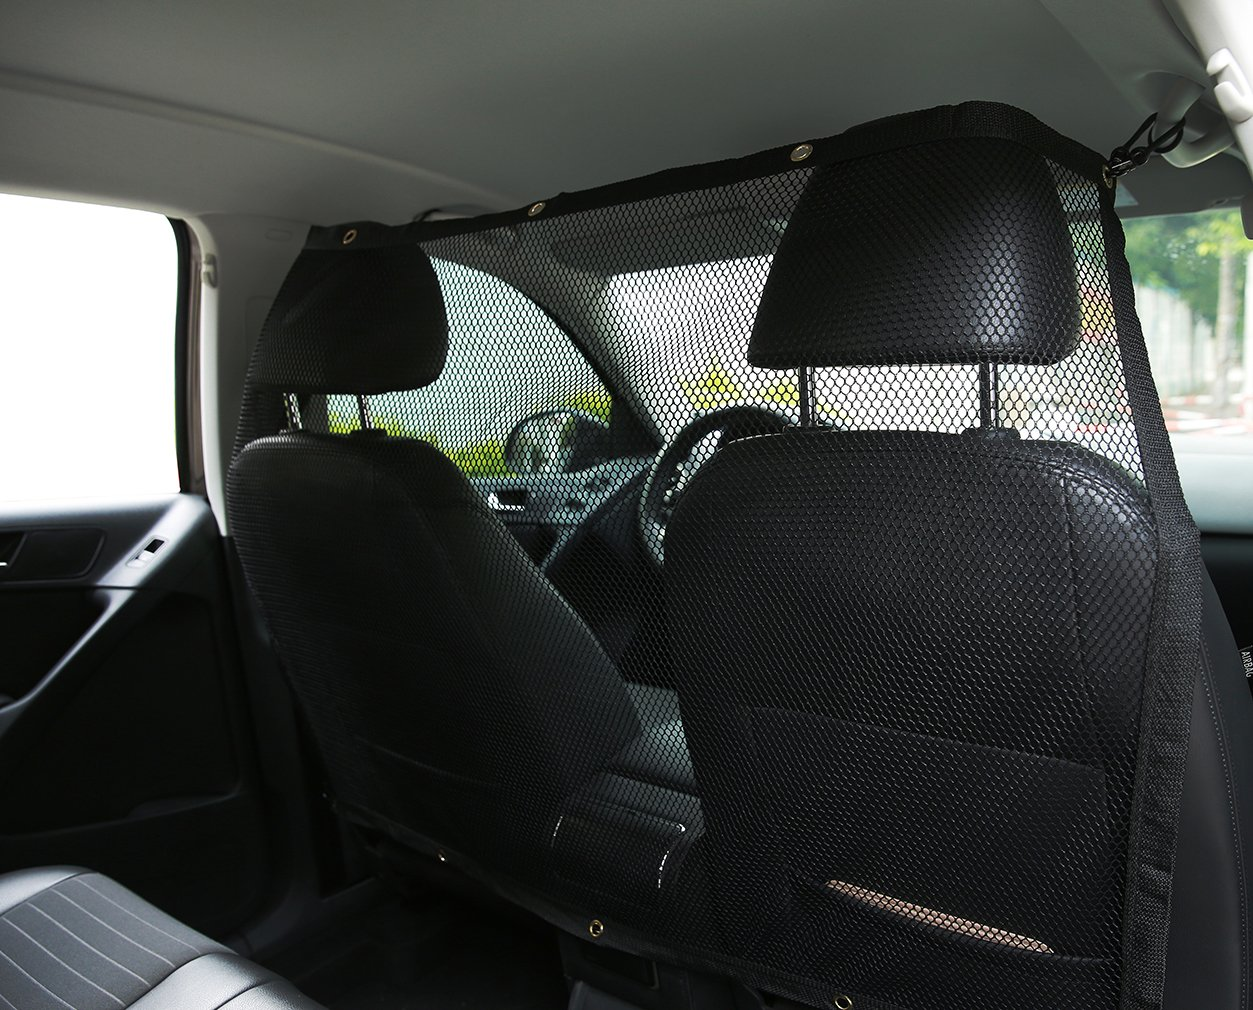 Highland Farms Select Vehicle Pet Barrier - High See Through Net Vehicle Pet Barrier for Cars, Vans, SUV's, and Trucks, Fit Front Seat